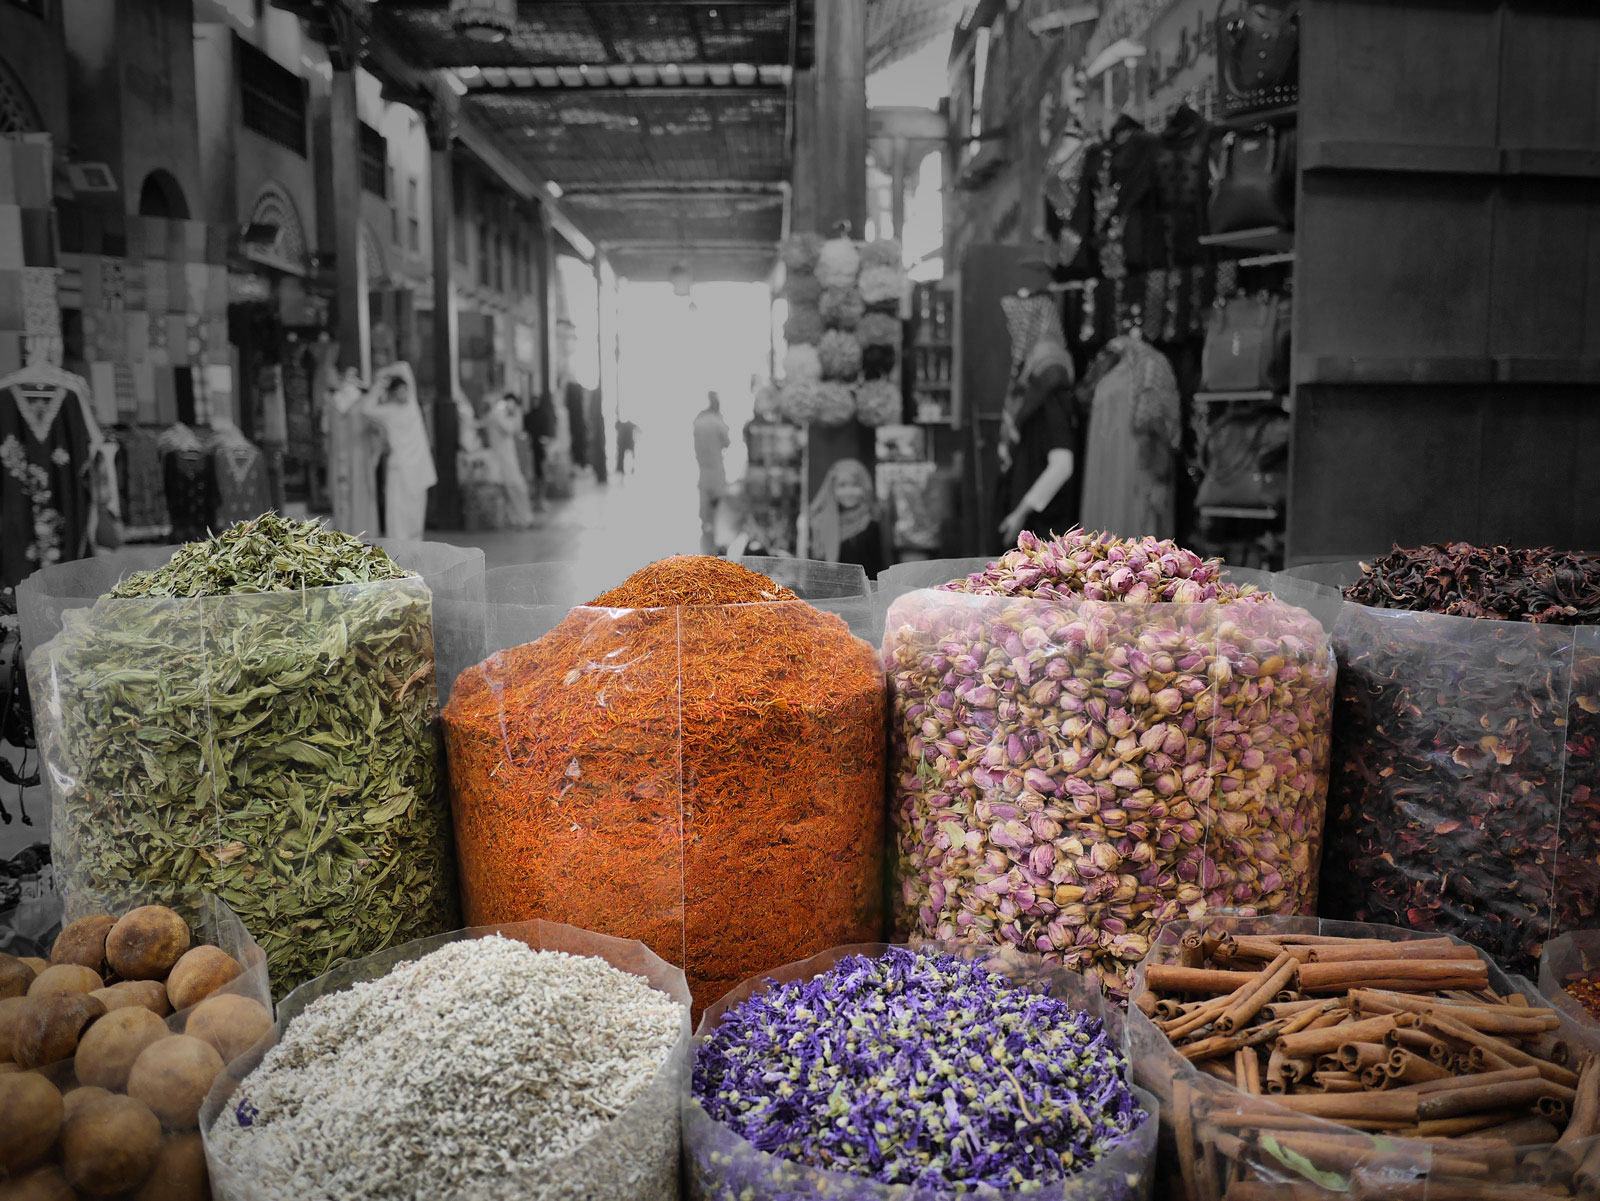 Fragrant Aromas Fill the Souk - Dubai, United Arab Emirates